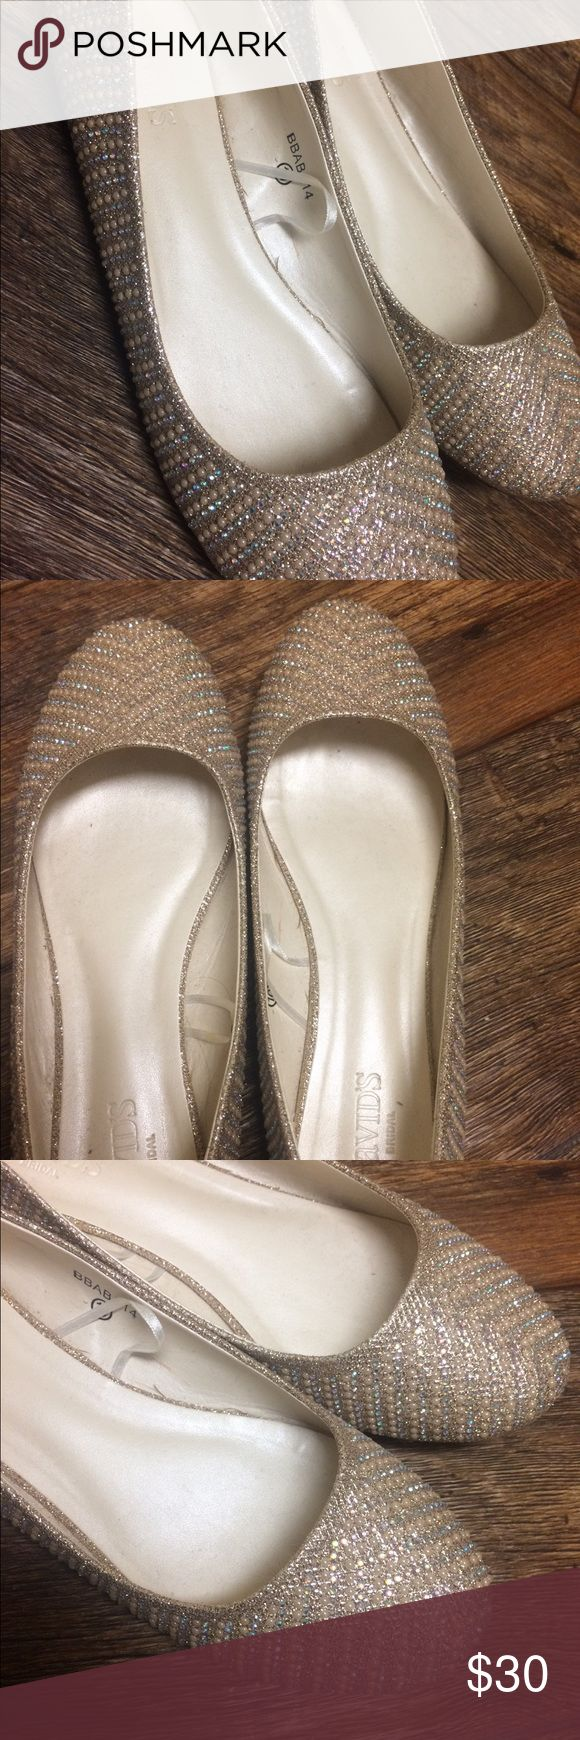 Davids Bridal Wedding Shoes Shoes only worn once, super comfy. Champagne Pearl color David's Bridal Shoes Flats & Loafers